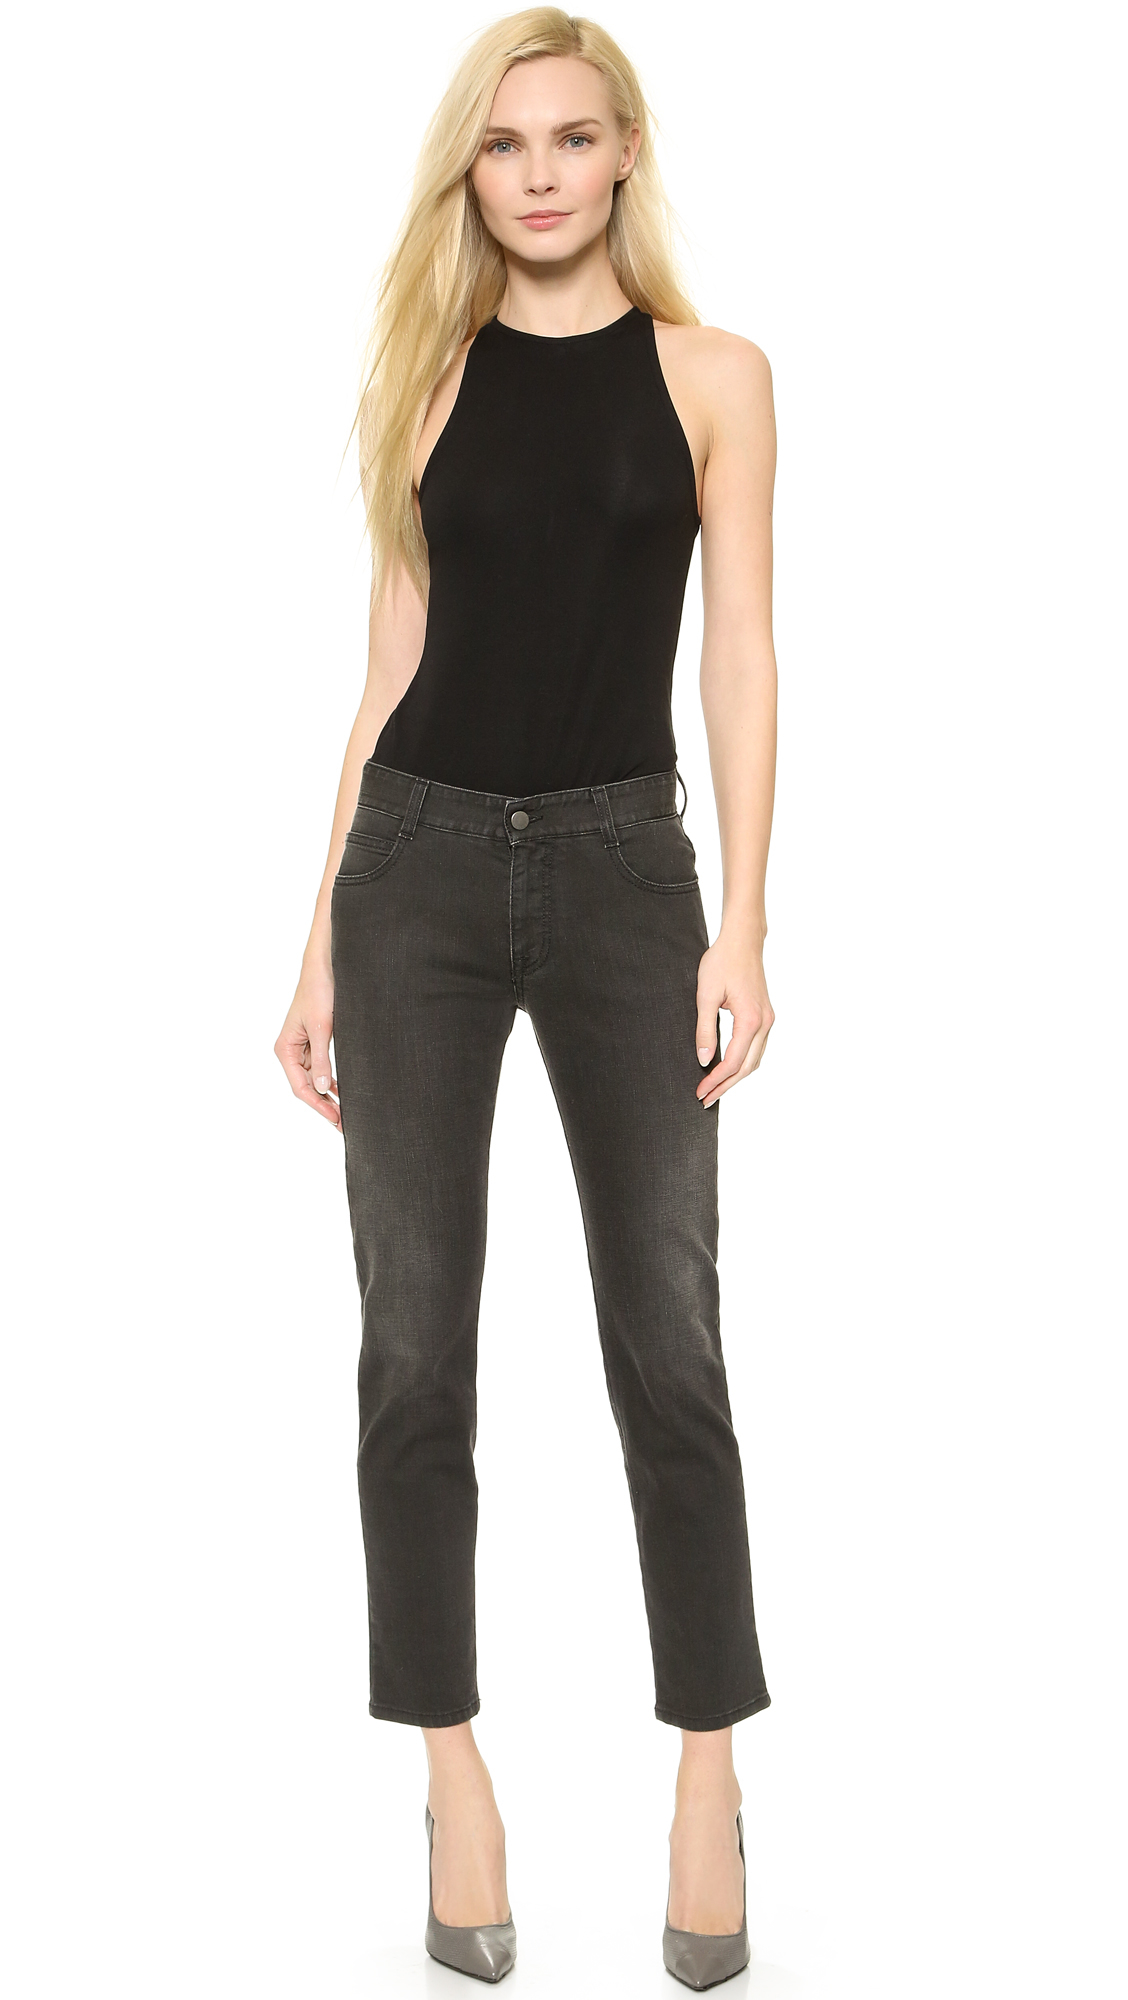 lyst stella mccartney patches embroidery jeans vintage black in